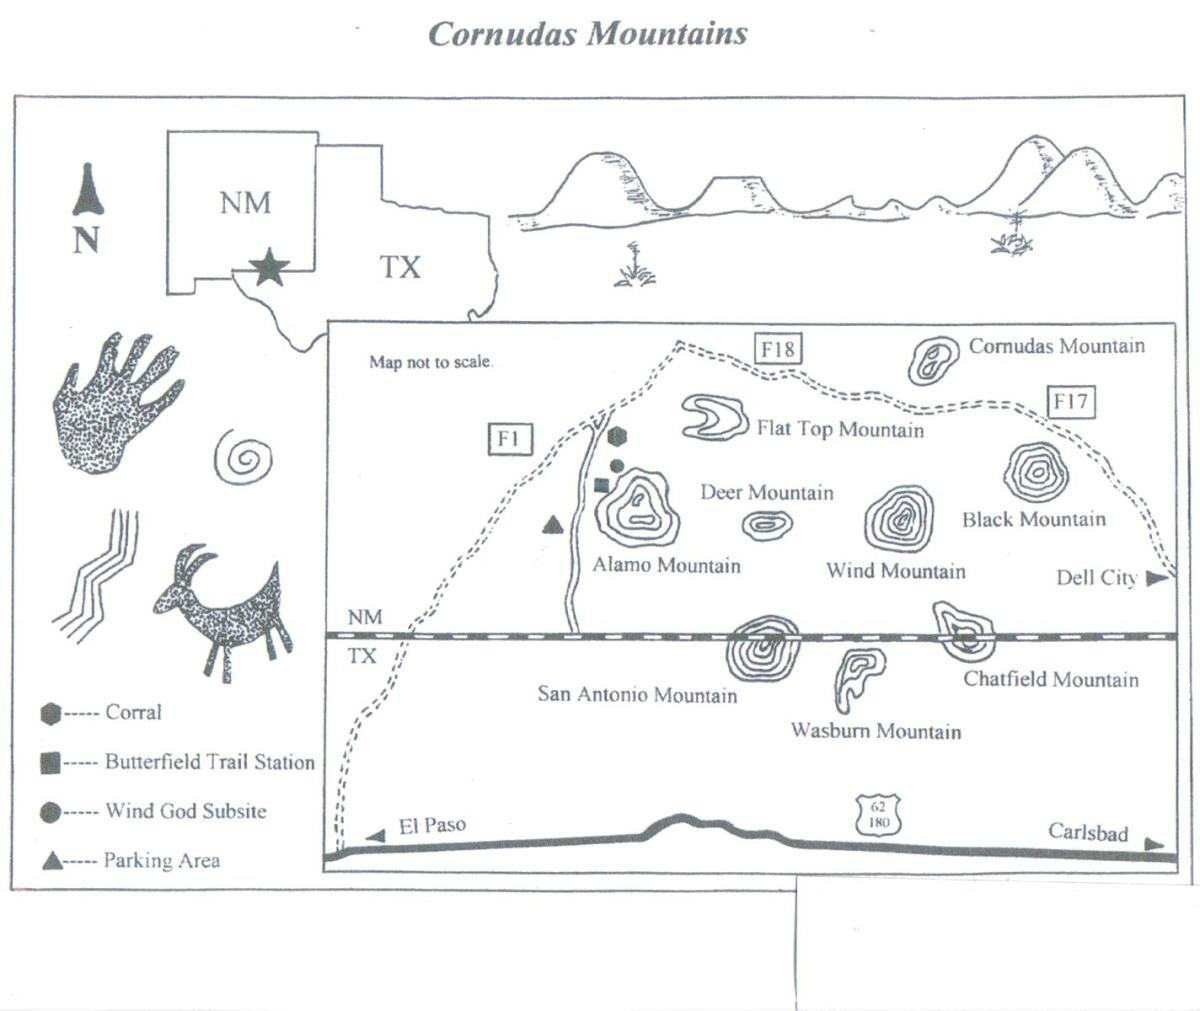 Cornudas Mountains, New Mexico